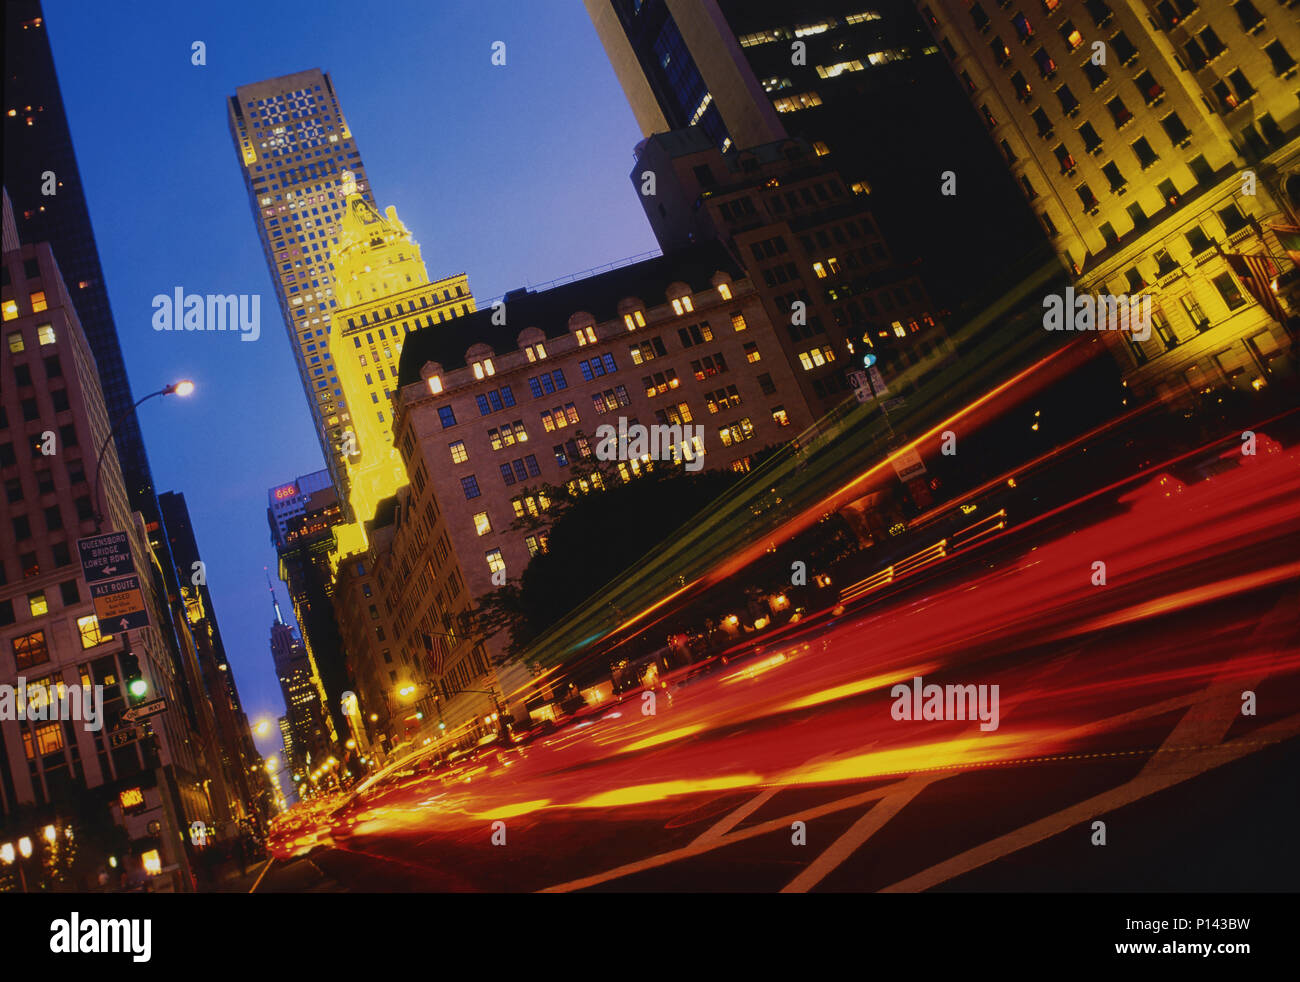 New York City on 5th Ave, looking south, with traffic streaks and illuminated buildings at dusk, New York, NY, USA Stock Photo